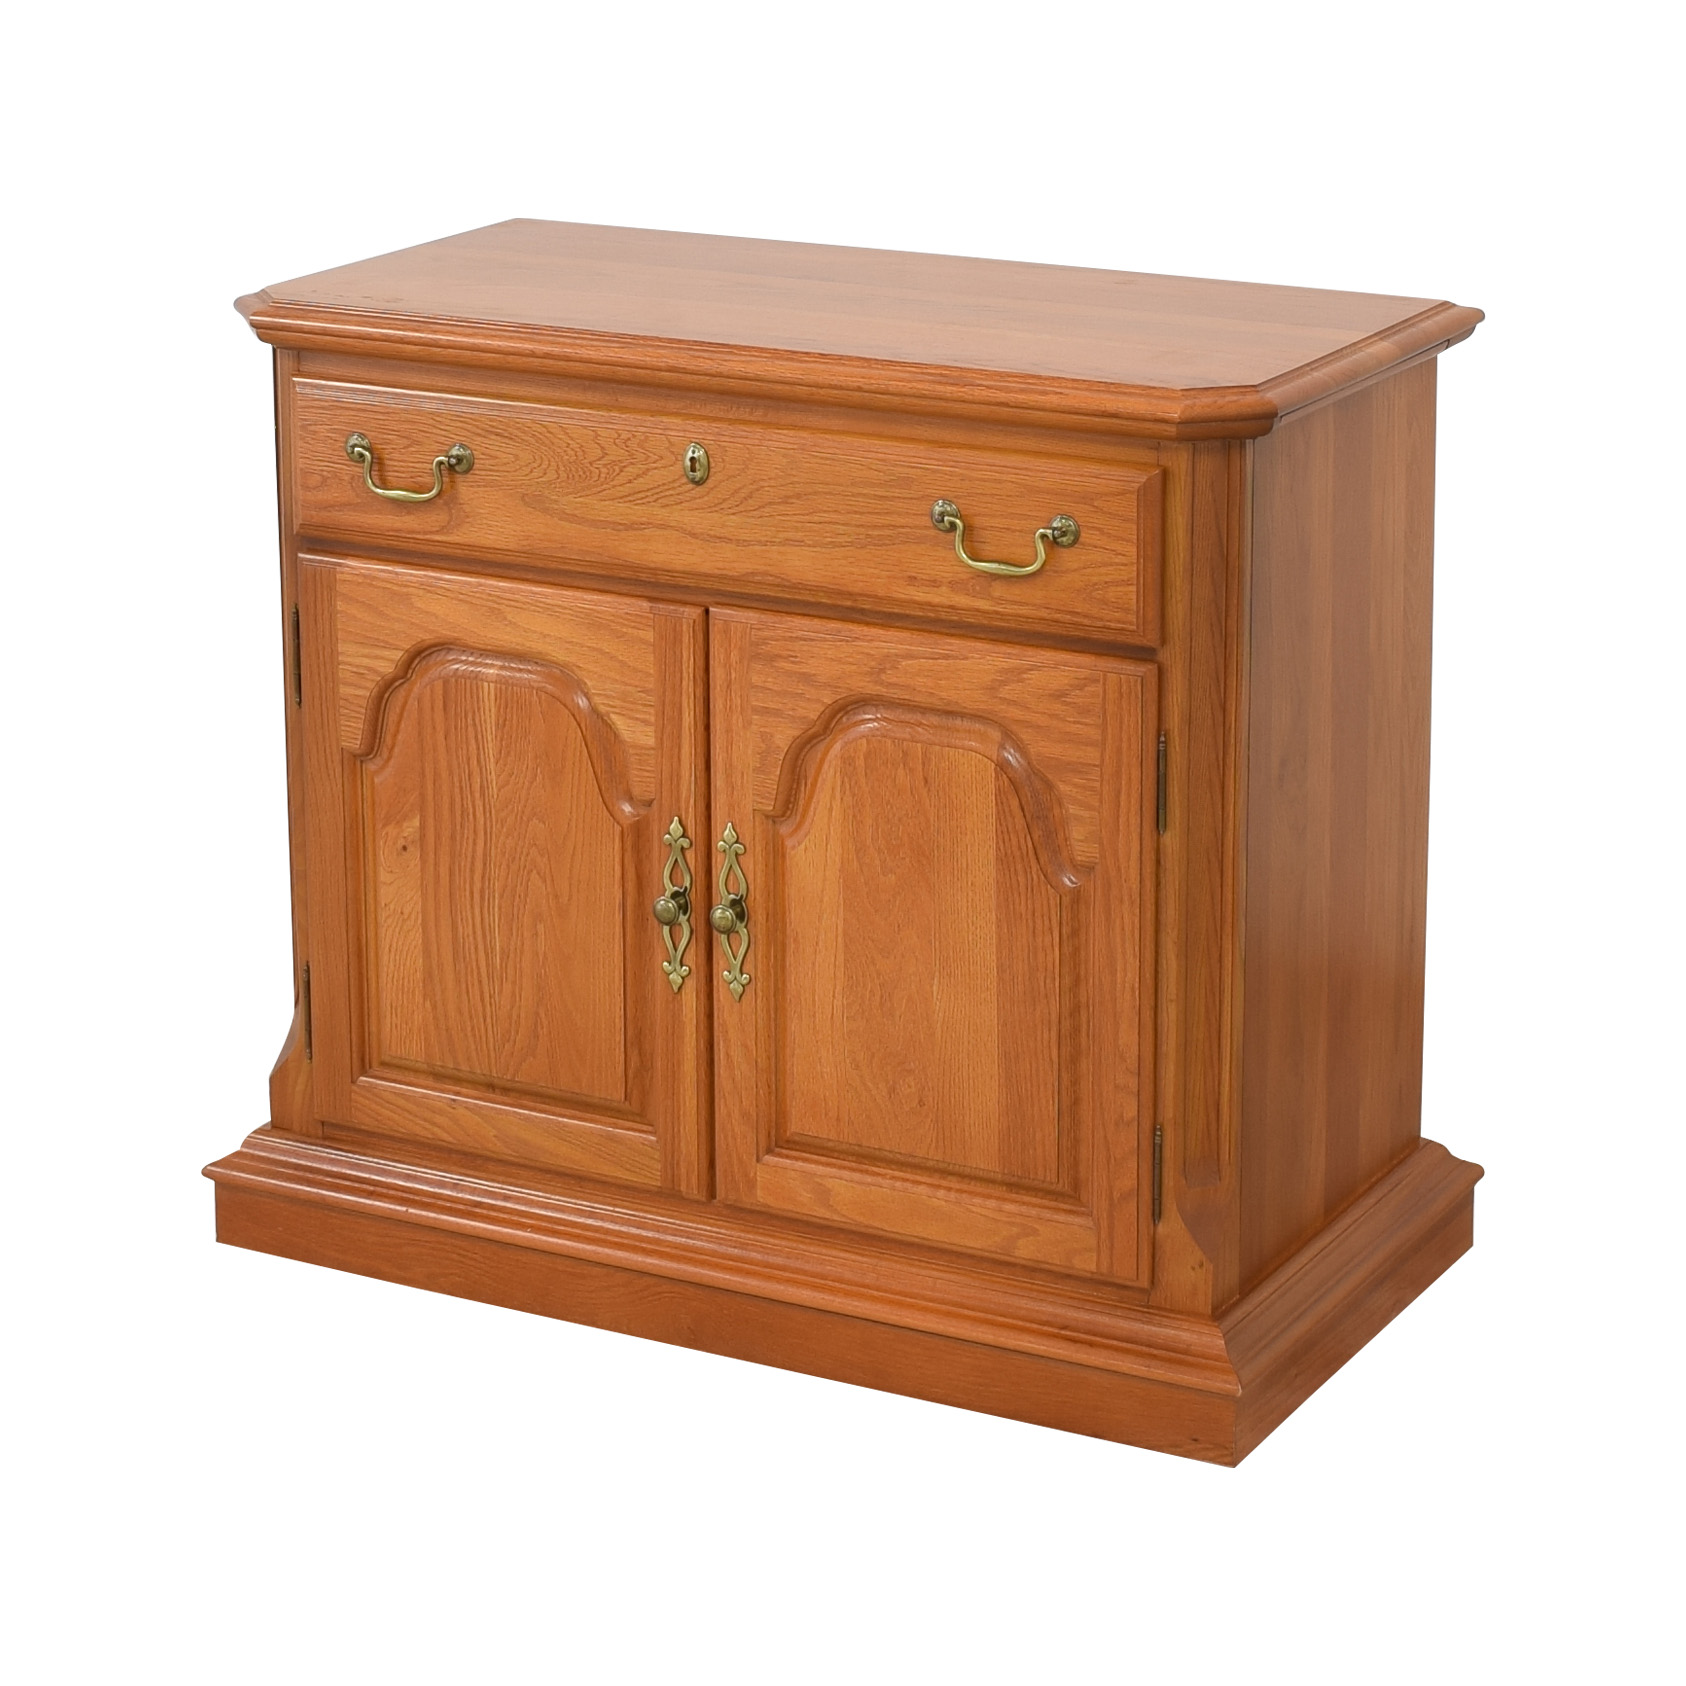 Sumter Cabinet Co. Sumter Cabinet Company Bar Cart Buffet Sideboard dimensions